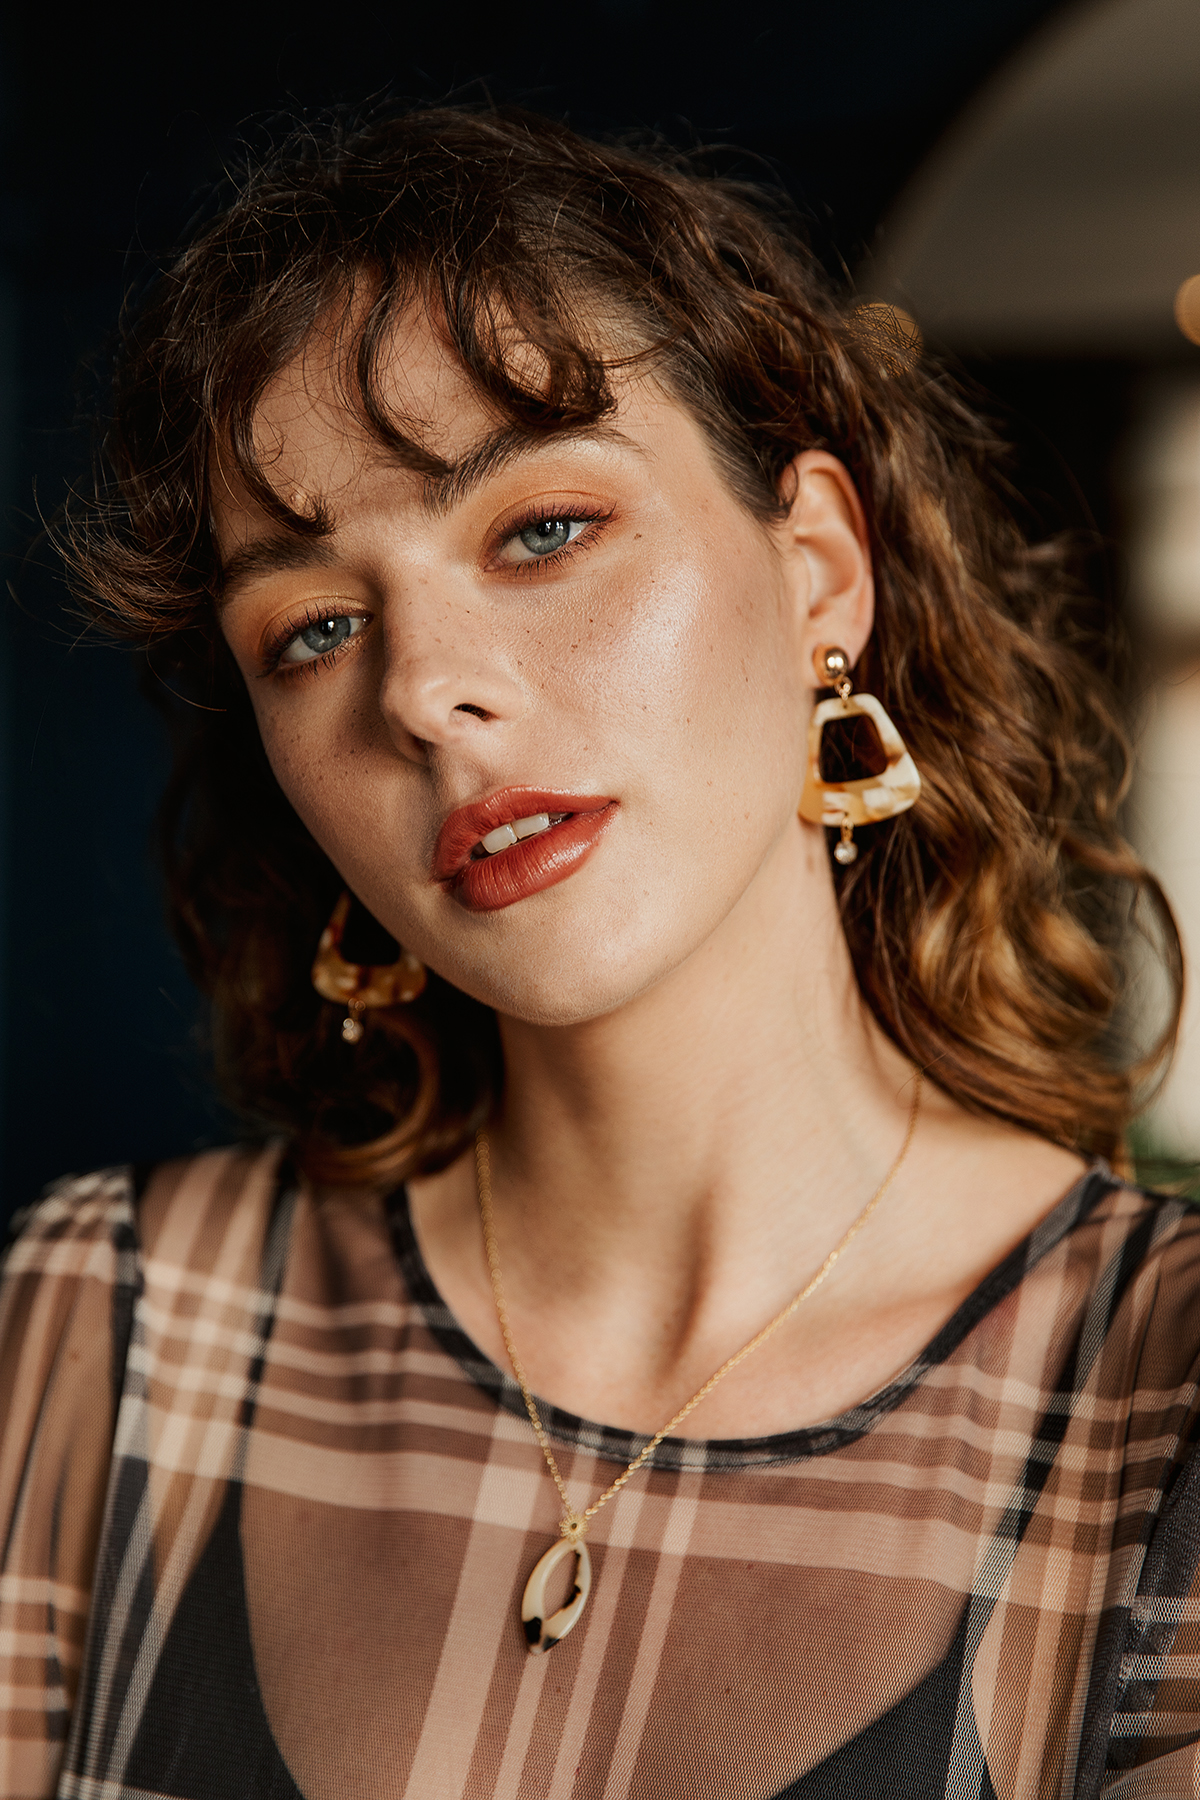 Sugar + Style fashion lookbook and e-com AW 2019. Portrait of model Alexandra in autumnal faux freckles make up. Shot by London based fashion photographer Ailera Stone